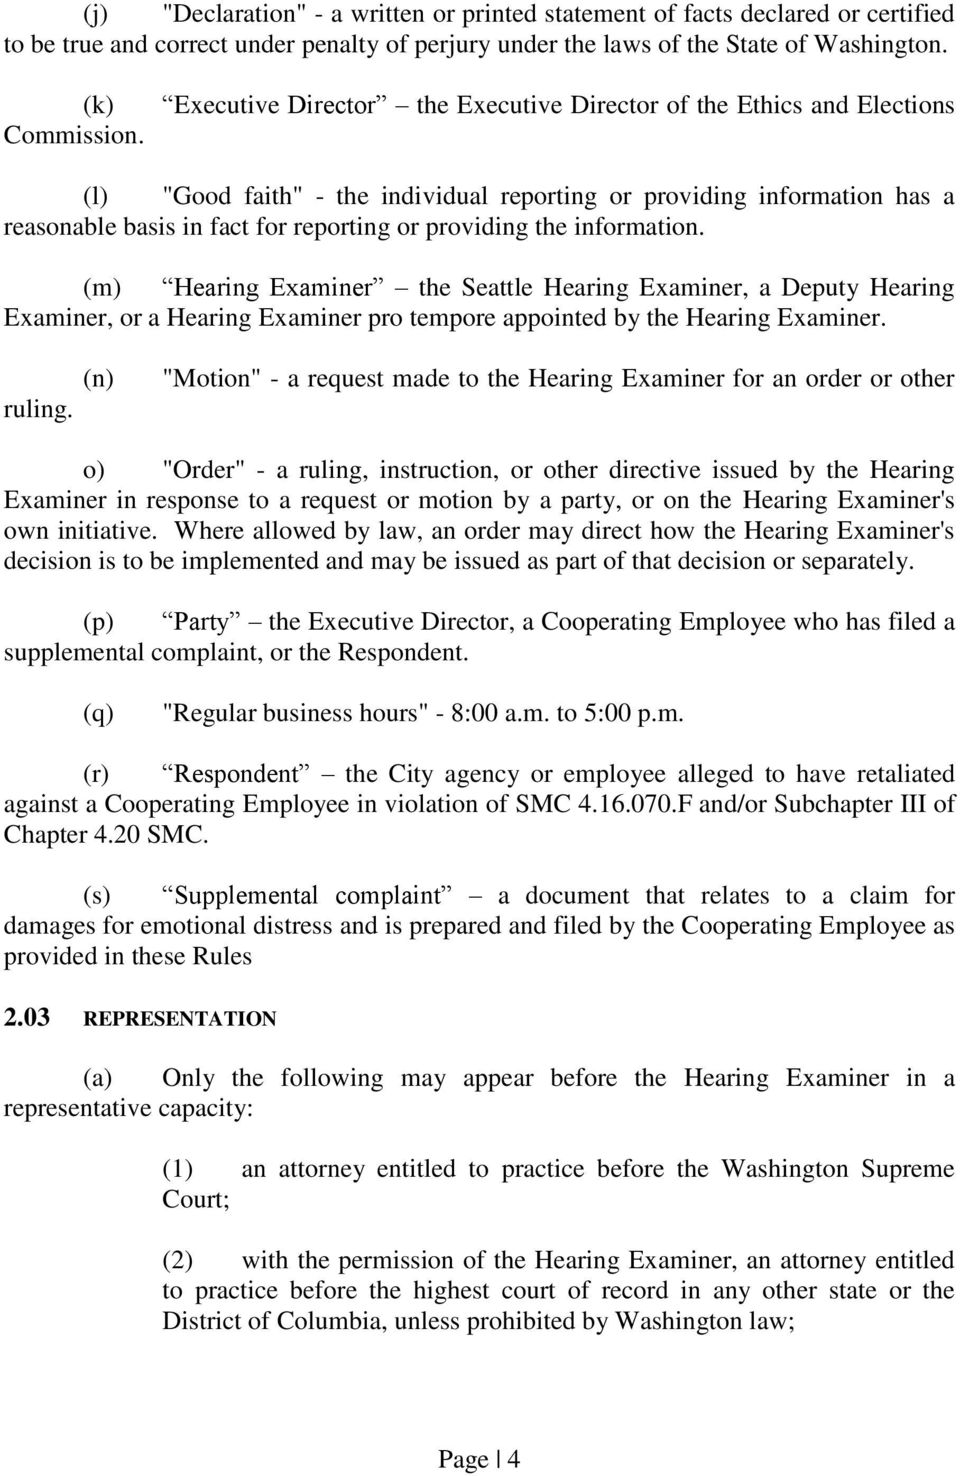 the information. (m) Hearing Examiner the Seattle Hearing Examiner, a Deputy Hearing Examiner, or a Hearing Examiner pro tempore appointed by the Hearing Examiner. ruling.